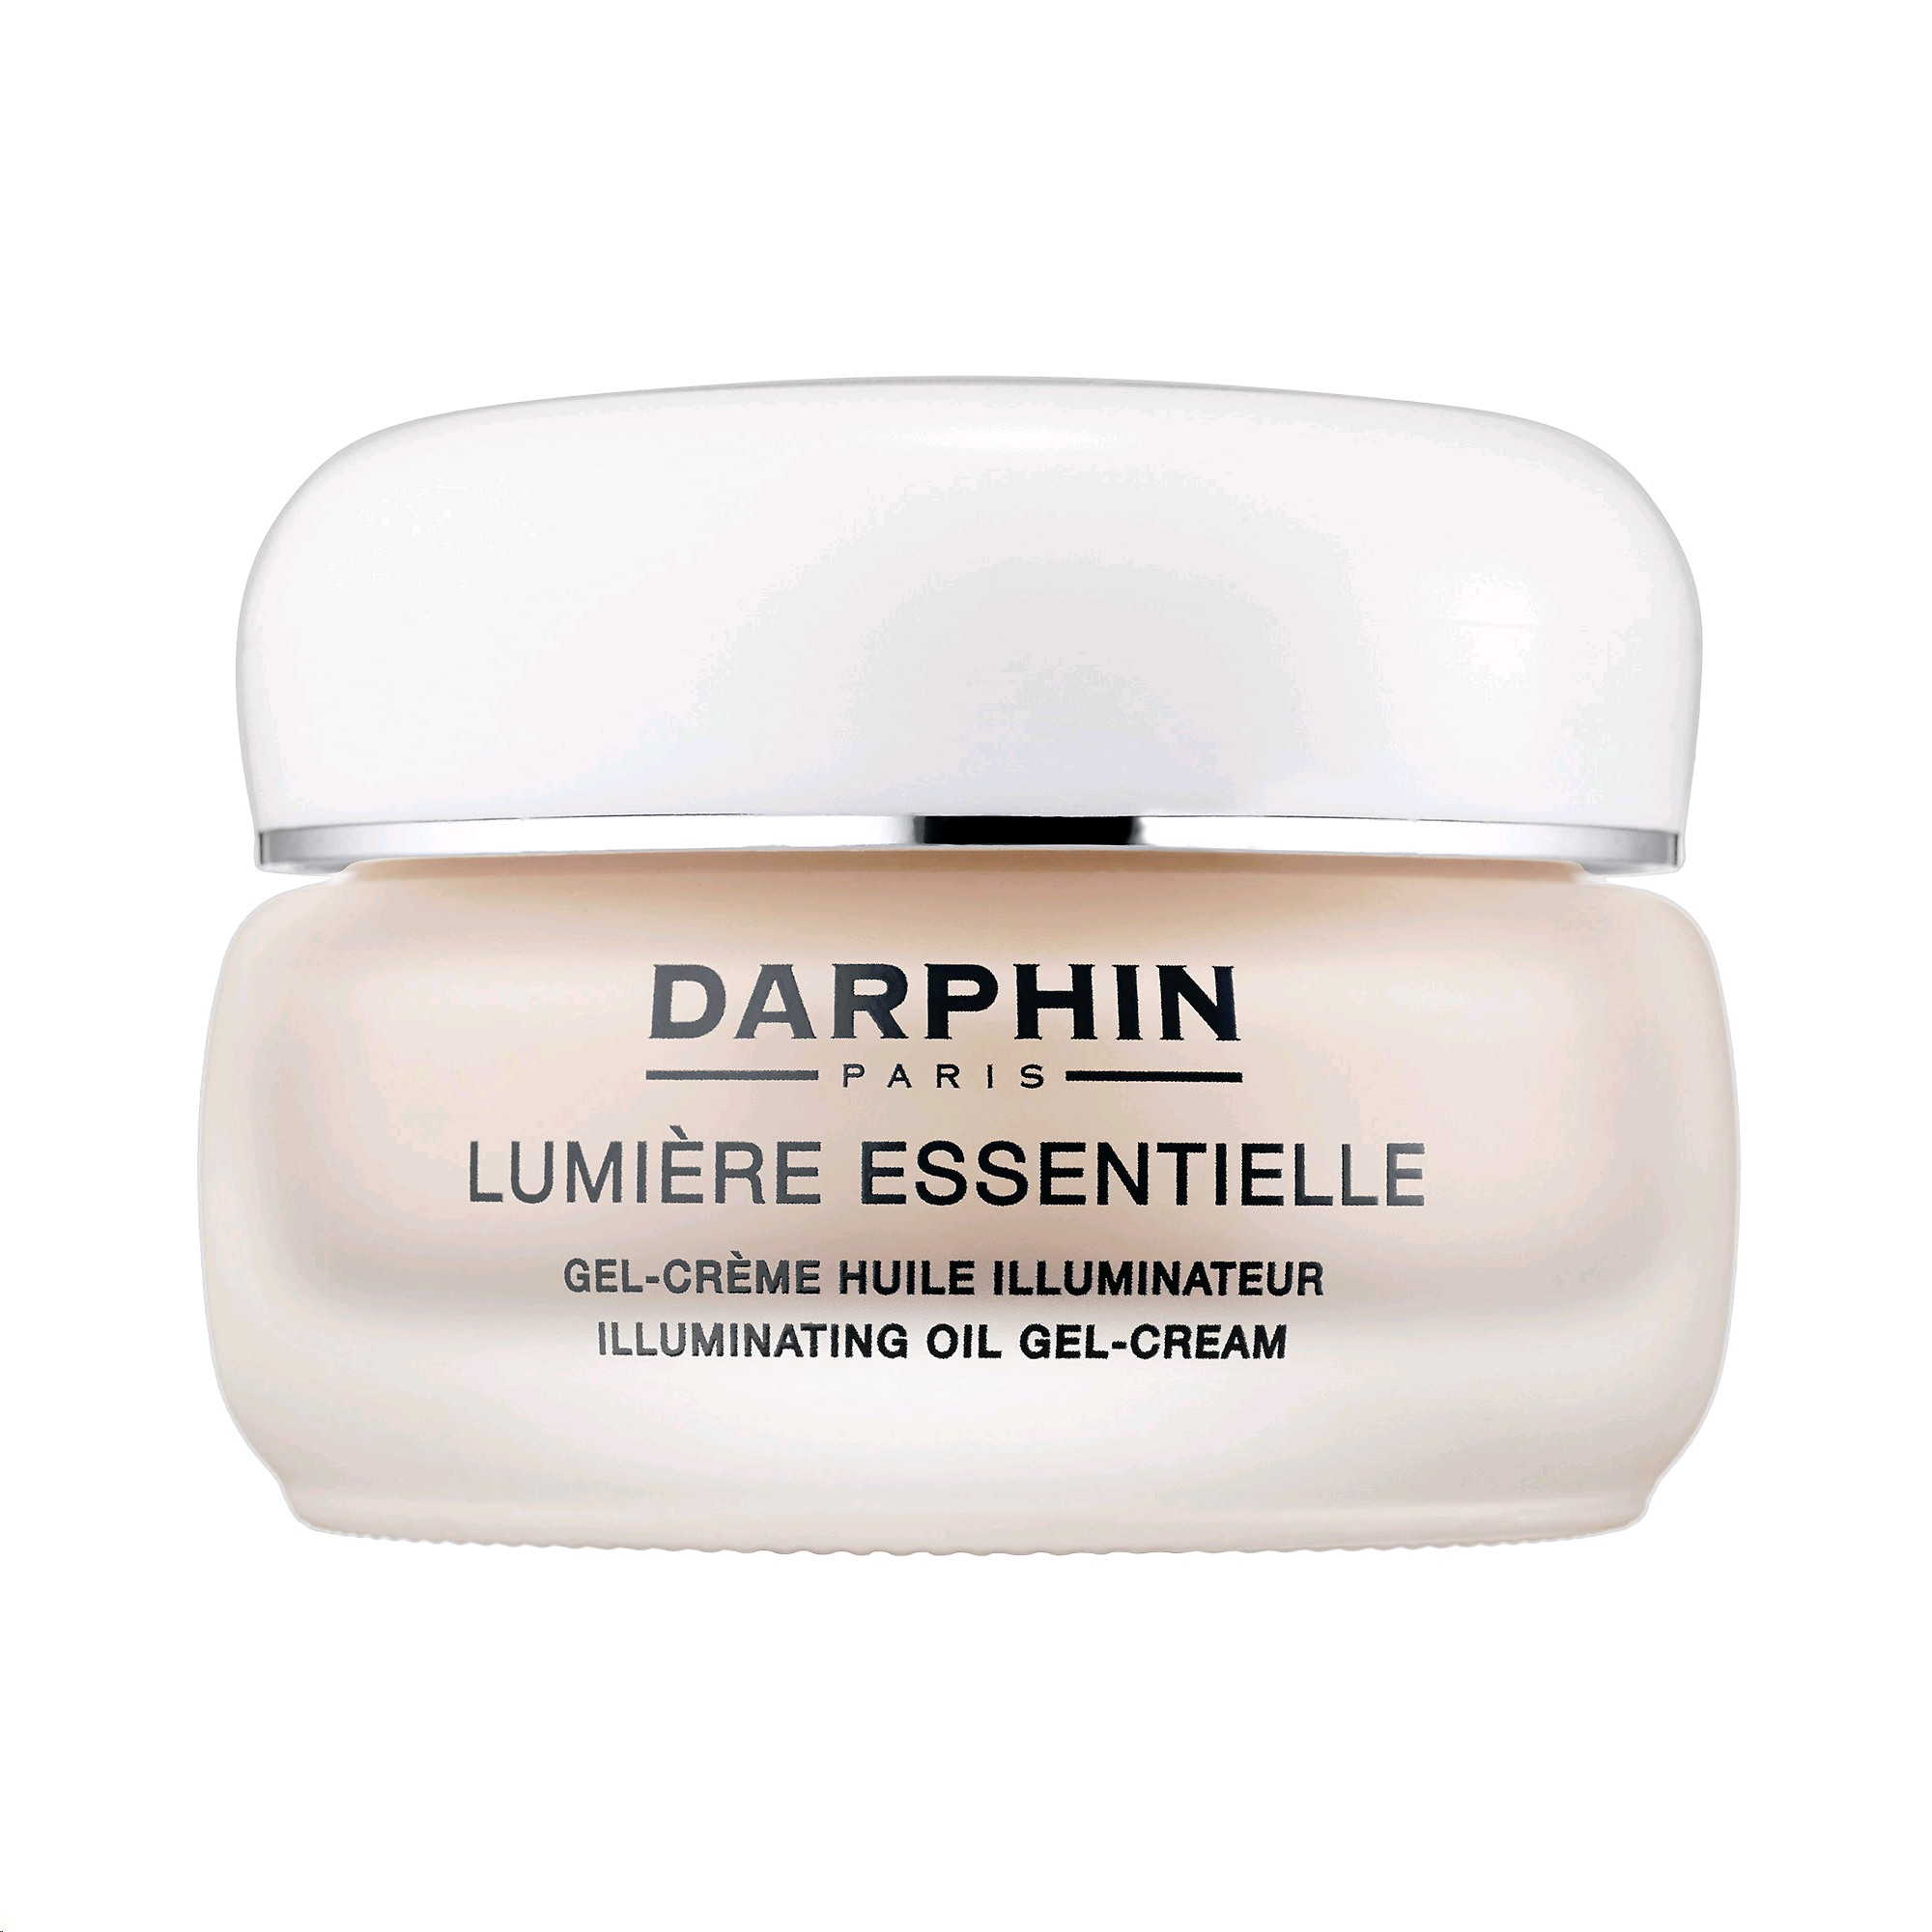 DARPHIN LUMIERE ESSENTIELLE GEL-CREMA 50ML